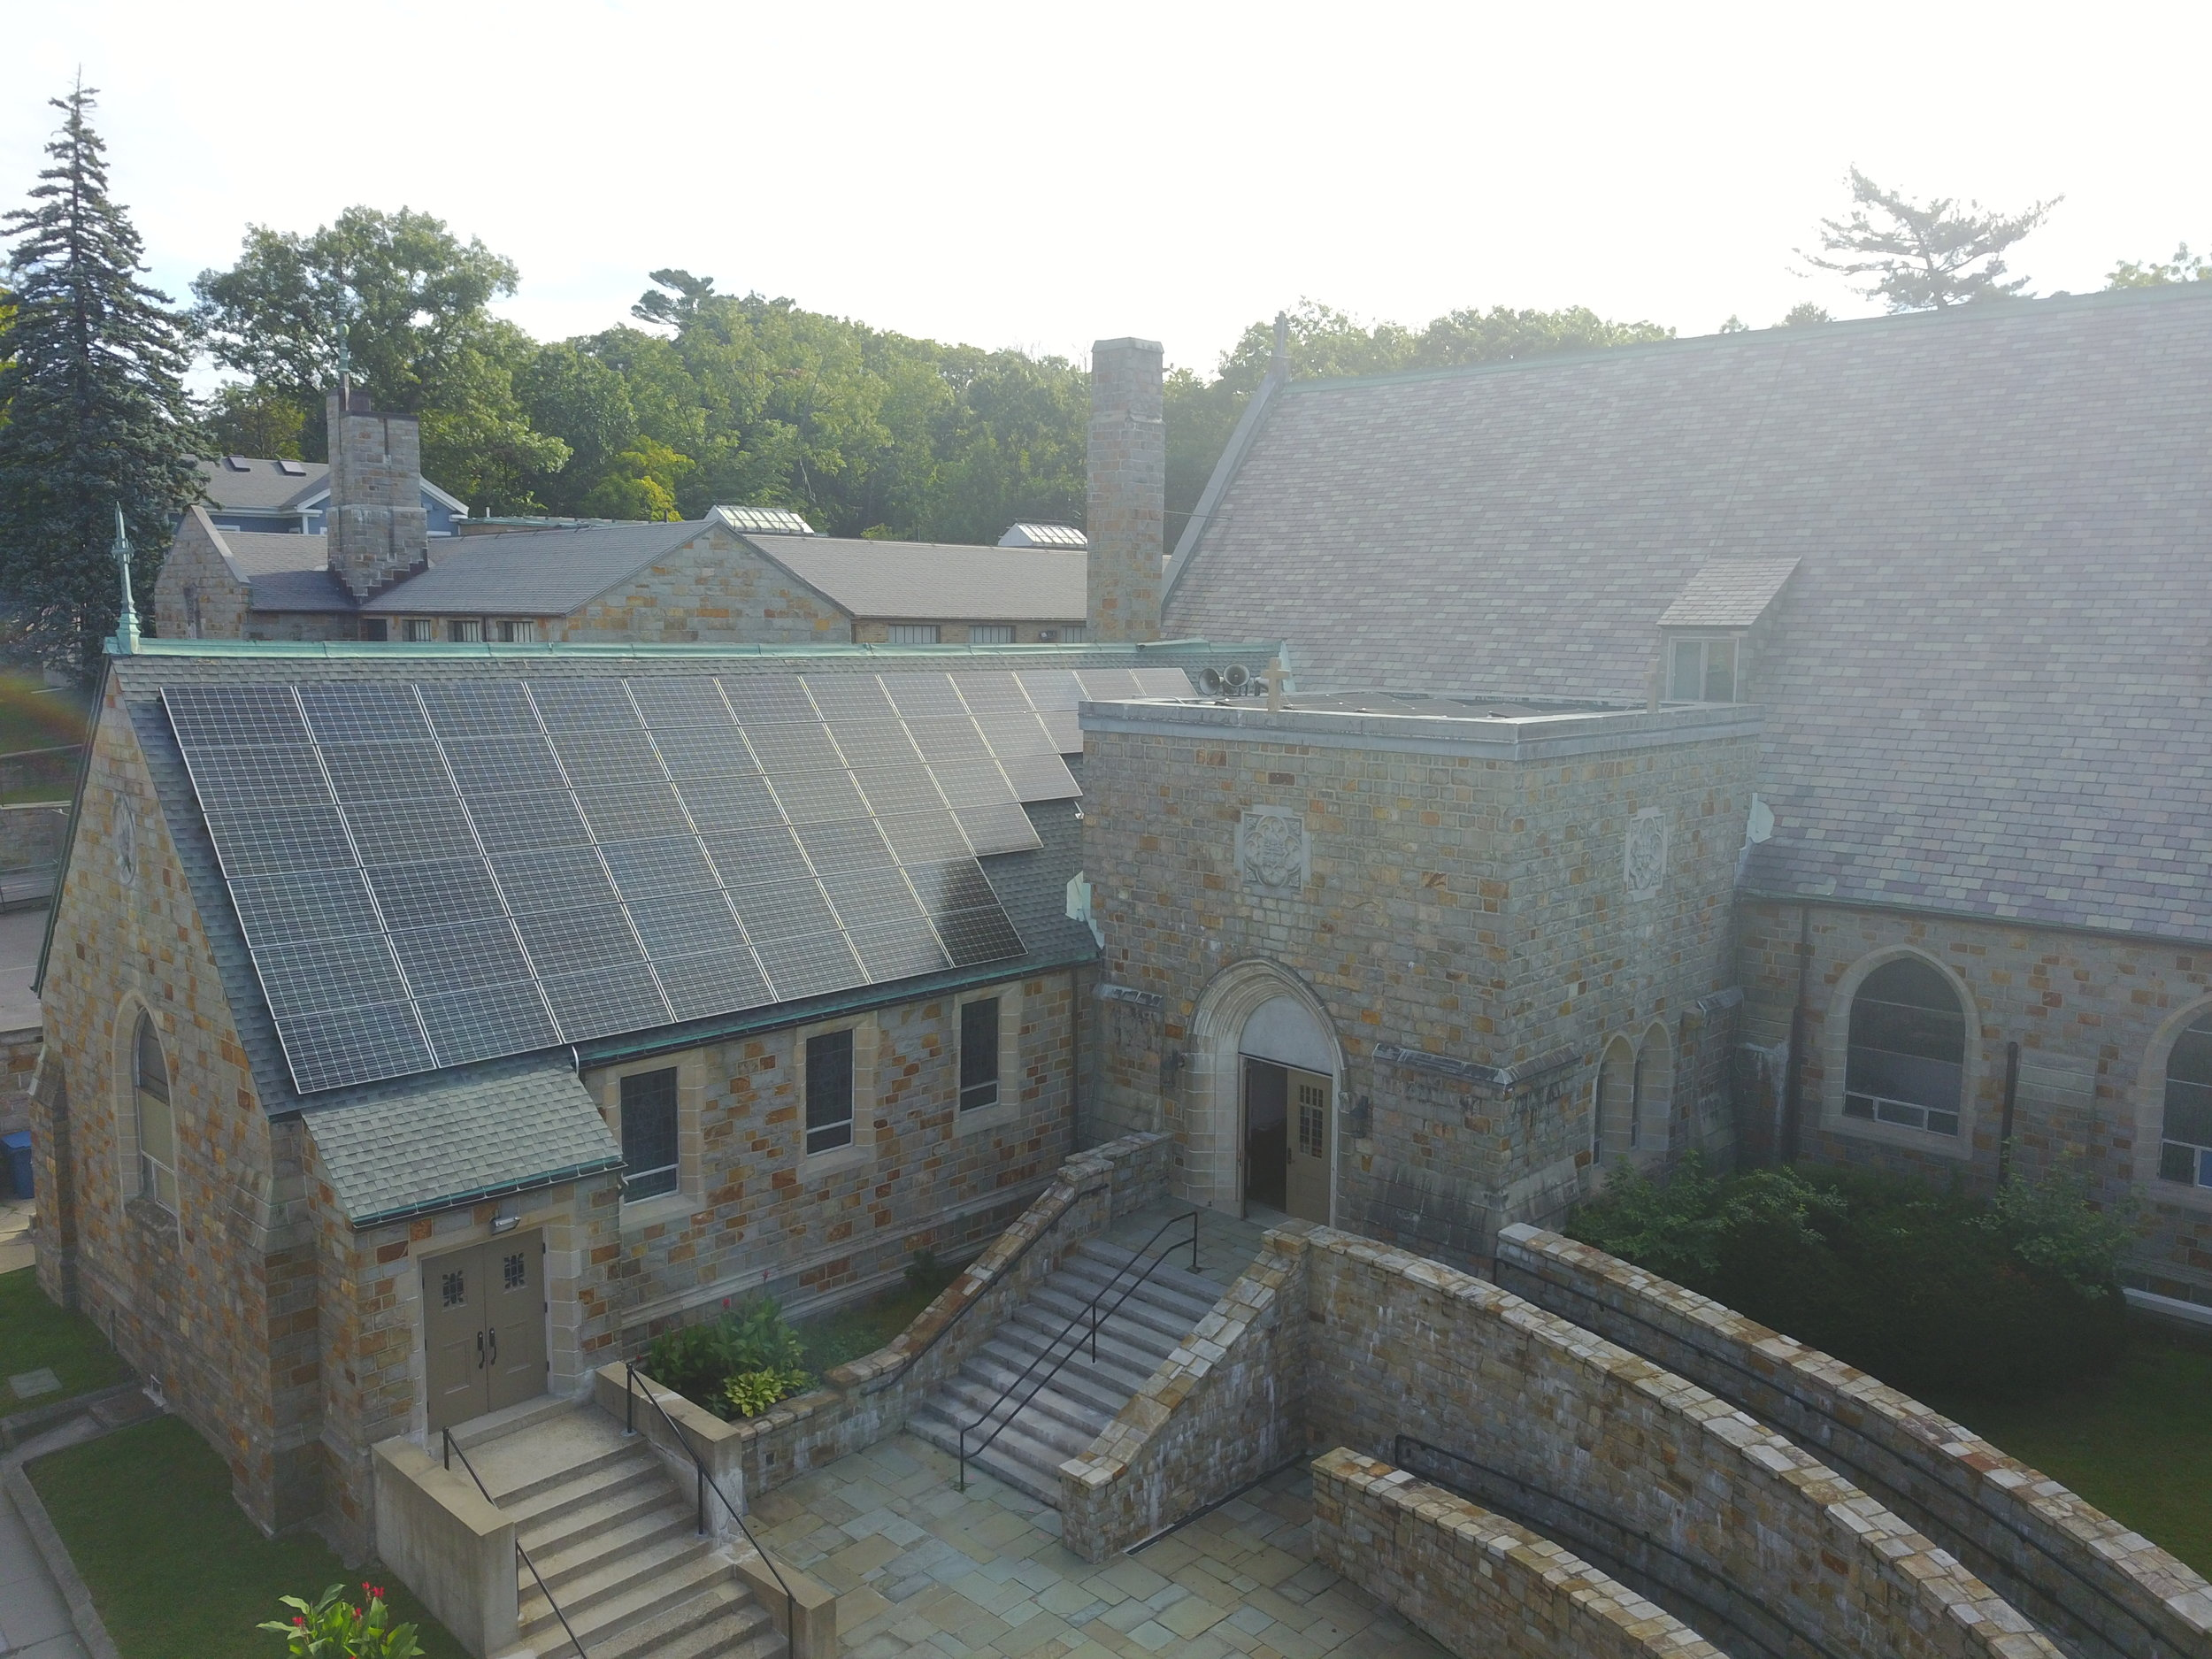 """""""As a community of faith, it's really important for us to live our faith in everything that we do. These solar panels are really important to us in terms of living out our witness, to say that it's time for a clean energy future and we need to demonstrate that in our actions and the way we live as a church."""" -  Rev. Mariama White-Hammond"""